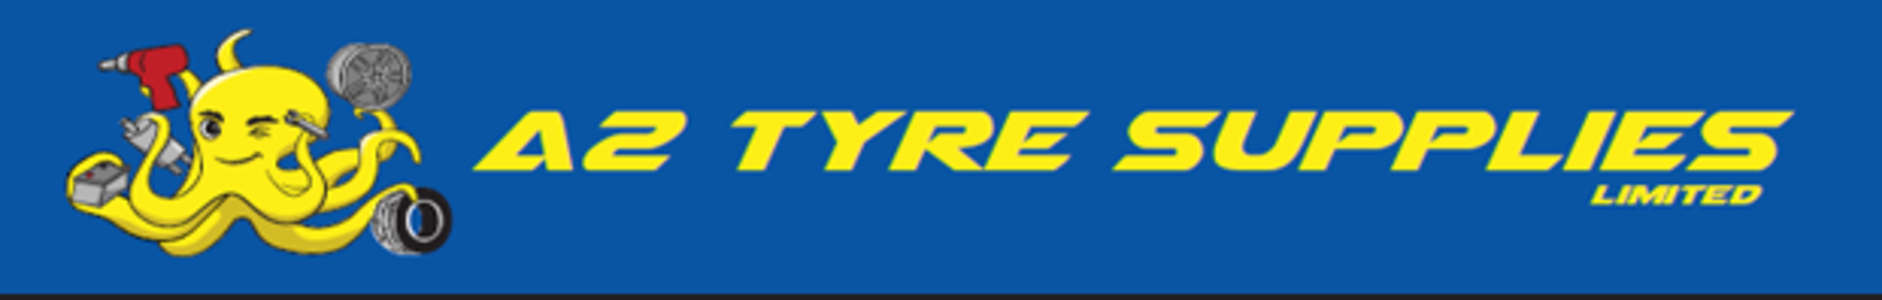 A2 Tyre Supplies